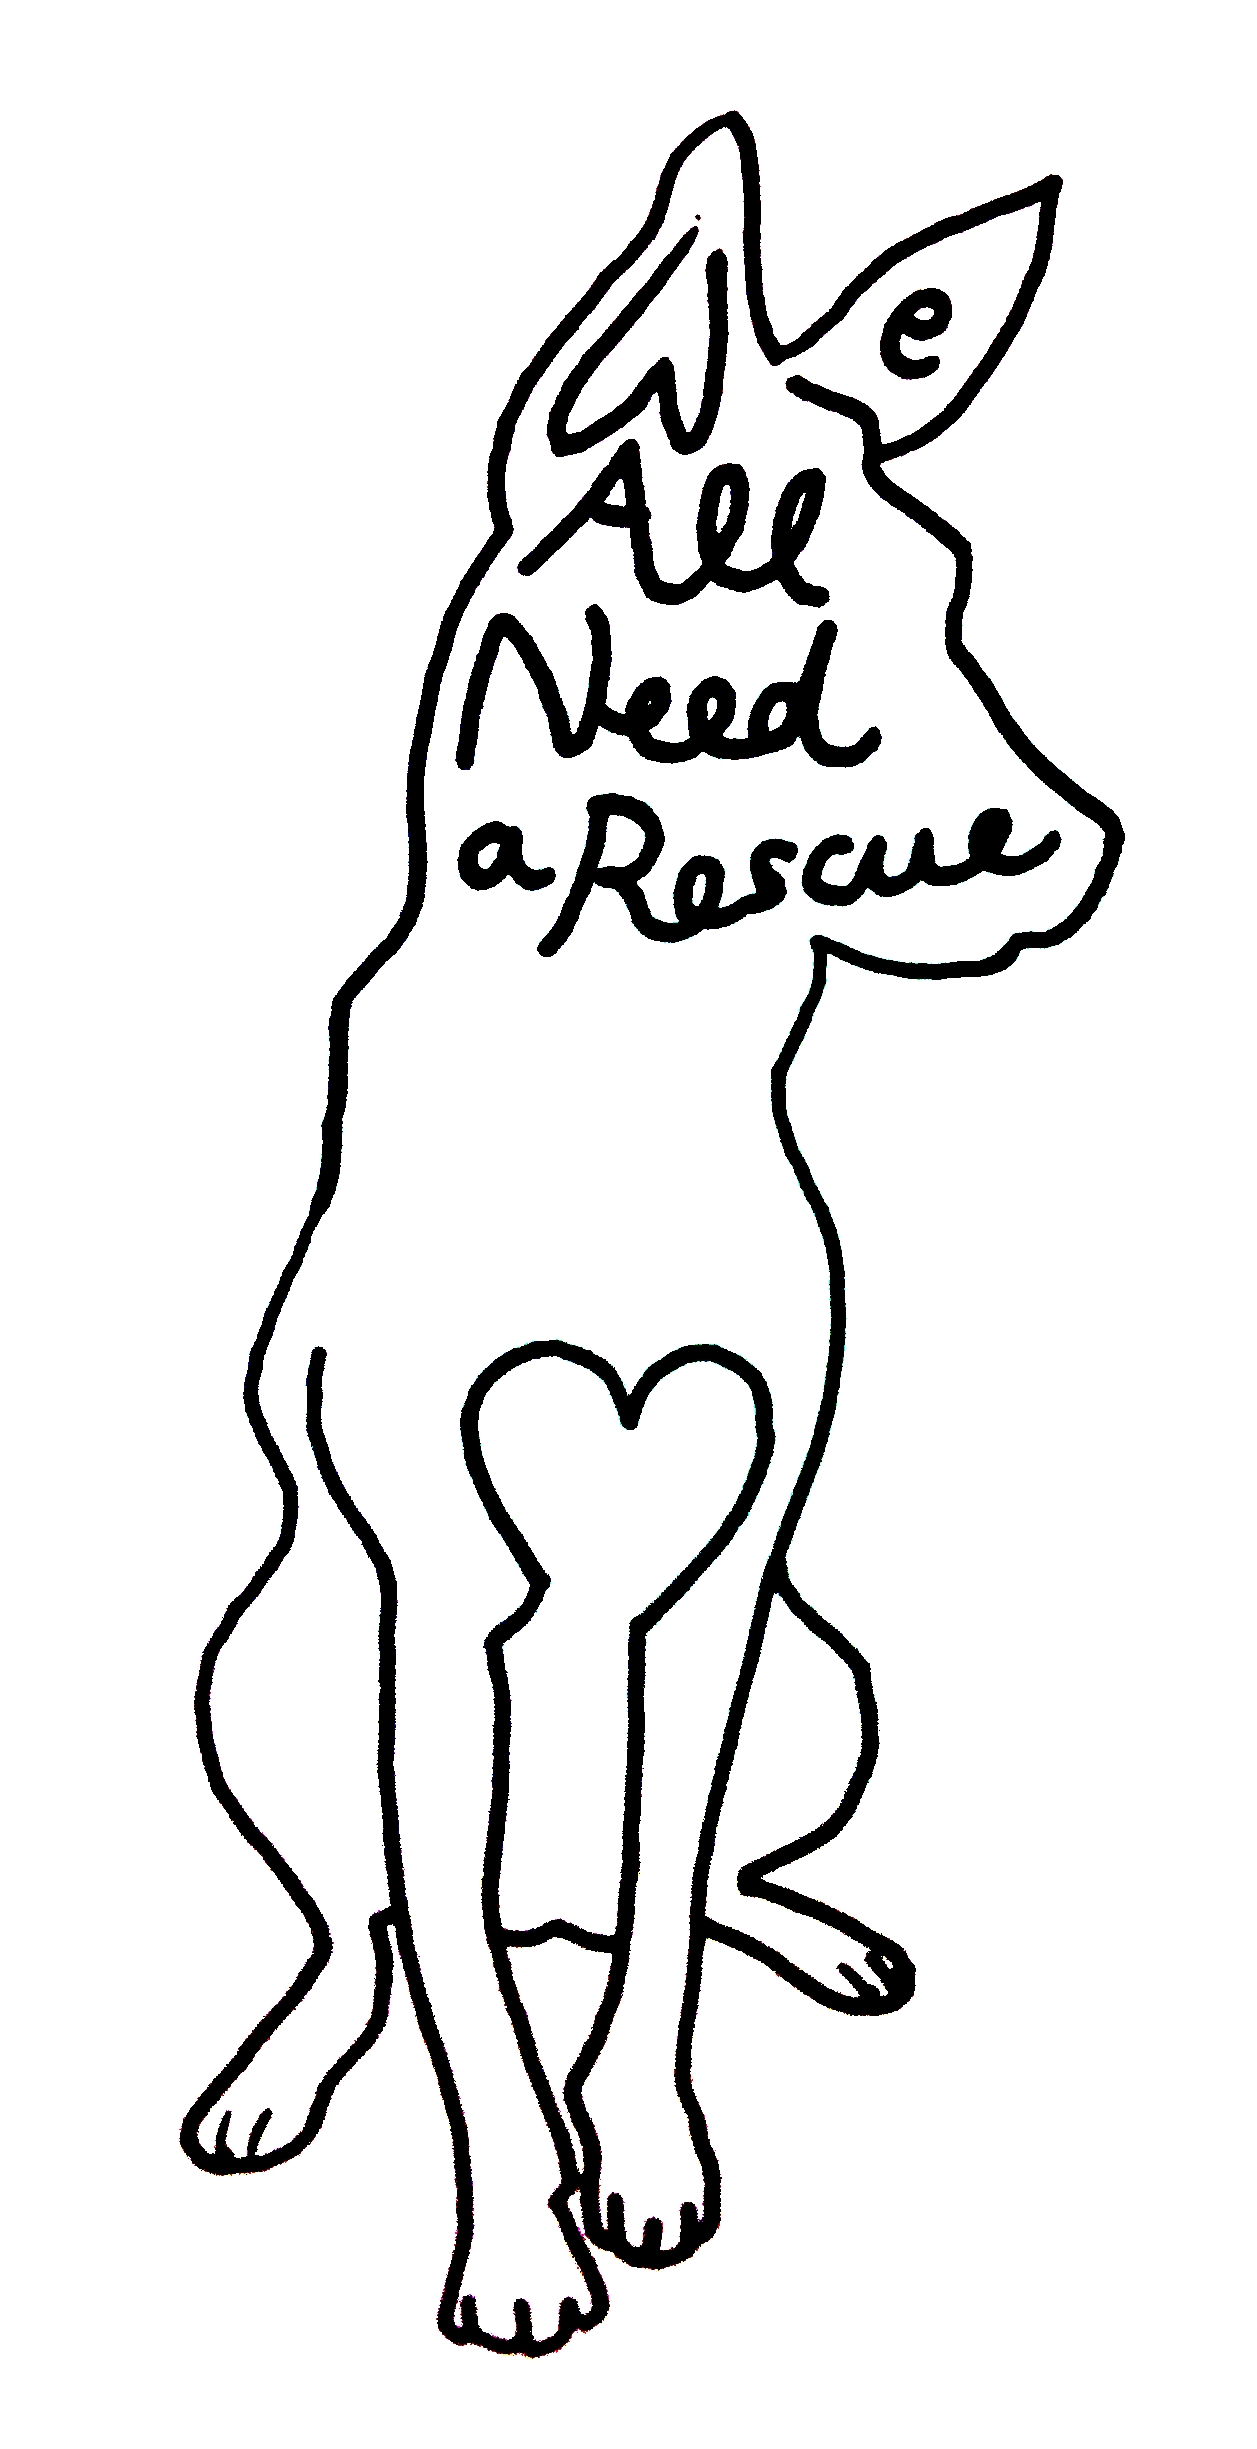 We All Need a Rescue K9 Rescue